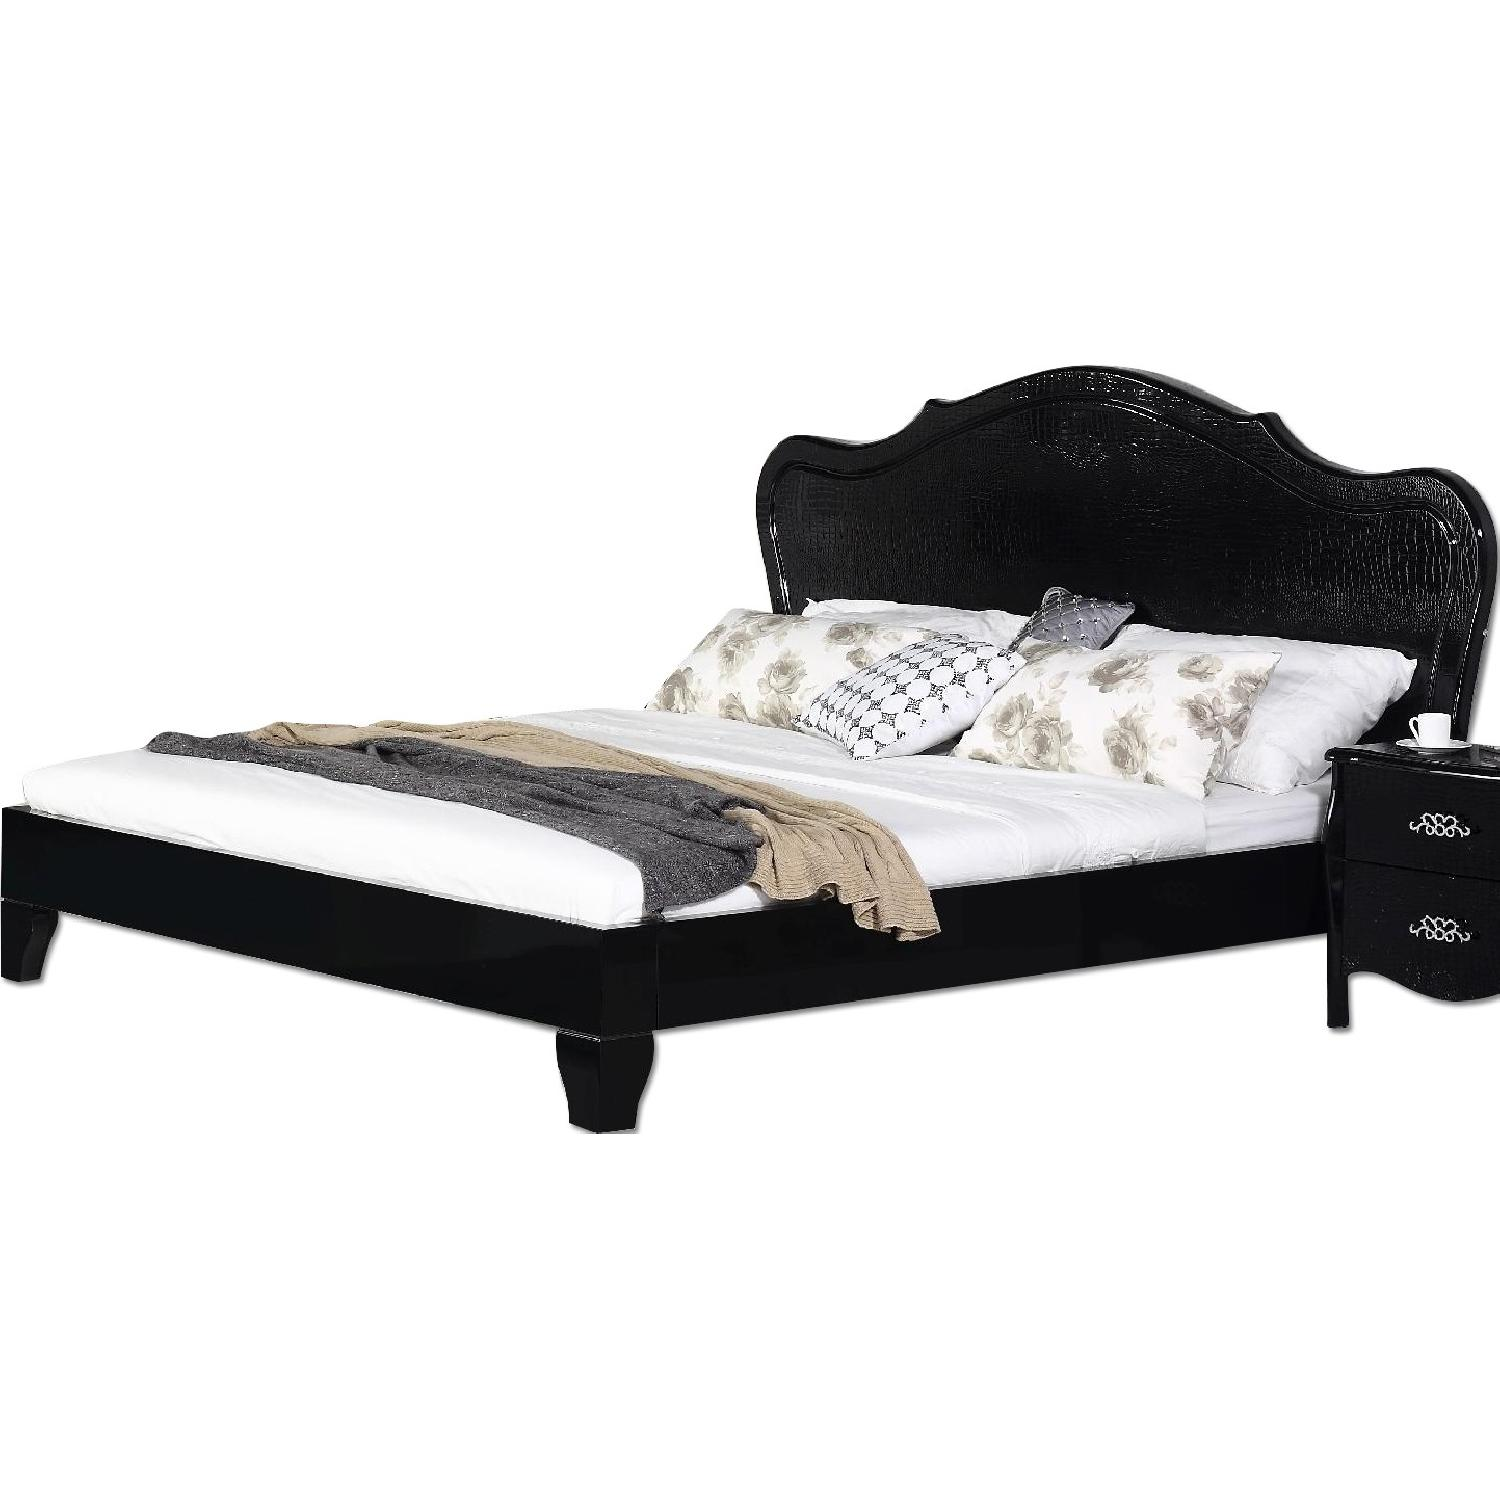 King Size Neo-Classical Style Platform Bed in High Gloss Black Finish w/ Crocodile Pattern Headboard